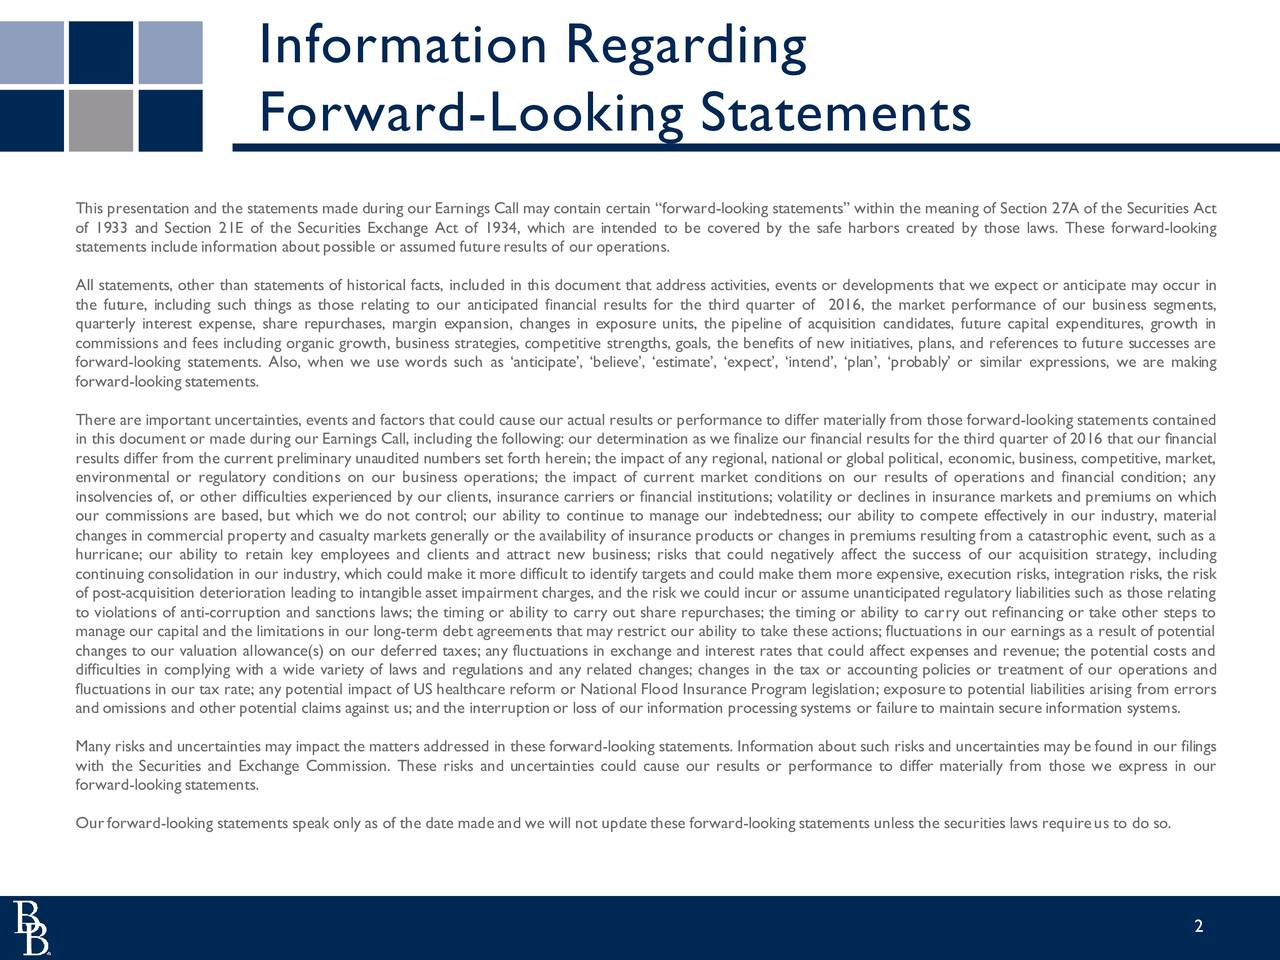 Forward-Looking Statements This presentation and the statements made during our Earnings Call may contain certain forward-looking statements within the meaning of Section 27A of the Securities Act of 1933 and Section 21E of the Securities Exchange Act of 1934, which are intended to be covered by the safe harbors created by those laws. These forward-looking statements include information aboutpossible or assumed futureresults of our operations. All statements, other than statements of historical facts, included in this document that address activities, events or developments that we expect or anticipate may occur in the future, including such things as those relating to our anticipated financial results for the third quarter of 2016, the market performance of our business segments, quarterly interest expense, share repurchases, margin expansion, changes in exposure units, the pipeline of acquisition candidates, future capital expenditures, growth in commissions and fees including organic growth, business strategies, competitive strengths, goals, the benefits of new initiatives, plans, and references to future successes are forward-looking statements. Also, when we use words such as anticipate, believe, estimate, expect, intend, plan, probably or similar expressions, we are making forward-looking statements. There are important uncertainties, events and factors that could cause our actual results or performance to differ materially from those forward-looking statements contained in this document or made during our Earnings Call, including the following: our determination as we finalize our financial results for the third quarter of 2016 that our financial results differ from the current preliminary unaudited numbers set forth herein; the impact of any regional, national or global political, economic, business, competitive, market, environmental or regulatory conditions on our business operations; the impact of current market conditions on our results of operations and financial condition; any insolvencies of, or other difficulties experienced by our clients, insurance carriers or financial institutions; volatility or declines in insurance markets and premiums on which our commissions are based, but which we do not control; our ability to continue to manage our indebtedness; our ability to compete effectively in our industry, material changes in commercial property and casualty markets generally or the availability of insurance products or changes in premiums resulting from a catastrophic event, such as a hurricane; our ability to retain key employees and clients and attract new business; risks that could negatively affect the success of our acquisition strategy, including continuing consolidation in our industry, which could make it more difficult to identify targets and could make them more expensive, execution risks, integration risks, the risk of post-acquisition deterioration leading to intangible asset impairment charges, and the risk we could incur or assume unanticipated regulatory liabilities such as those relating to violations of anti-corruption and sanctions laws; the timing or ability to carry out share repurchases; the timing or ability to carry out refinancing or take other steps to manage our capital and the limitations in our long-term debt agreements that may restrict our ability to take these actions; fluctuations in our earnings as a result of potential changes to our valuation allowance(s) on our deferred taxes; any fluctuations in exchange and interest rates that could affect expenses and revenue; the potential costs and difficulties in complying with a wide variety of laws and regulations and any related changes; changes in the tax or accounting policies or treatment of our operations and fluctuations in our tax rate; any potential impact of US healthcare reform or National Flood Insurance Program legislation; exposure to potential liabilities arising from errors and omissions and other potential claims against us; and the interruptionor loss of our information processing systems or failure to maintain secure information systems. Many risks and uncertainties may impact the matters addressed in these forward-looking statements. Information about such risks and uncertainties may be found in our filings with the Securities and Exchange Commission. These risks and uncertainties could cause our results or performance to differ materially from those we express in our forward-looking statements. Ourforward-looking statements speak only as of the date made and we will not update these forward-looking statements unless the securities laws requireus to do so. 2